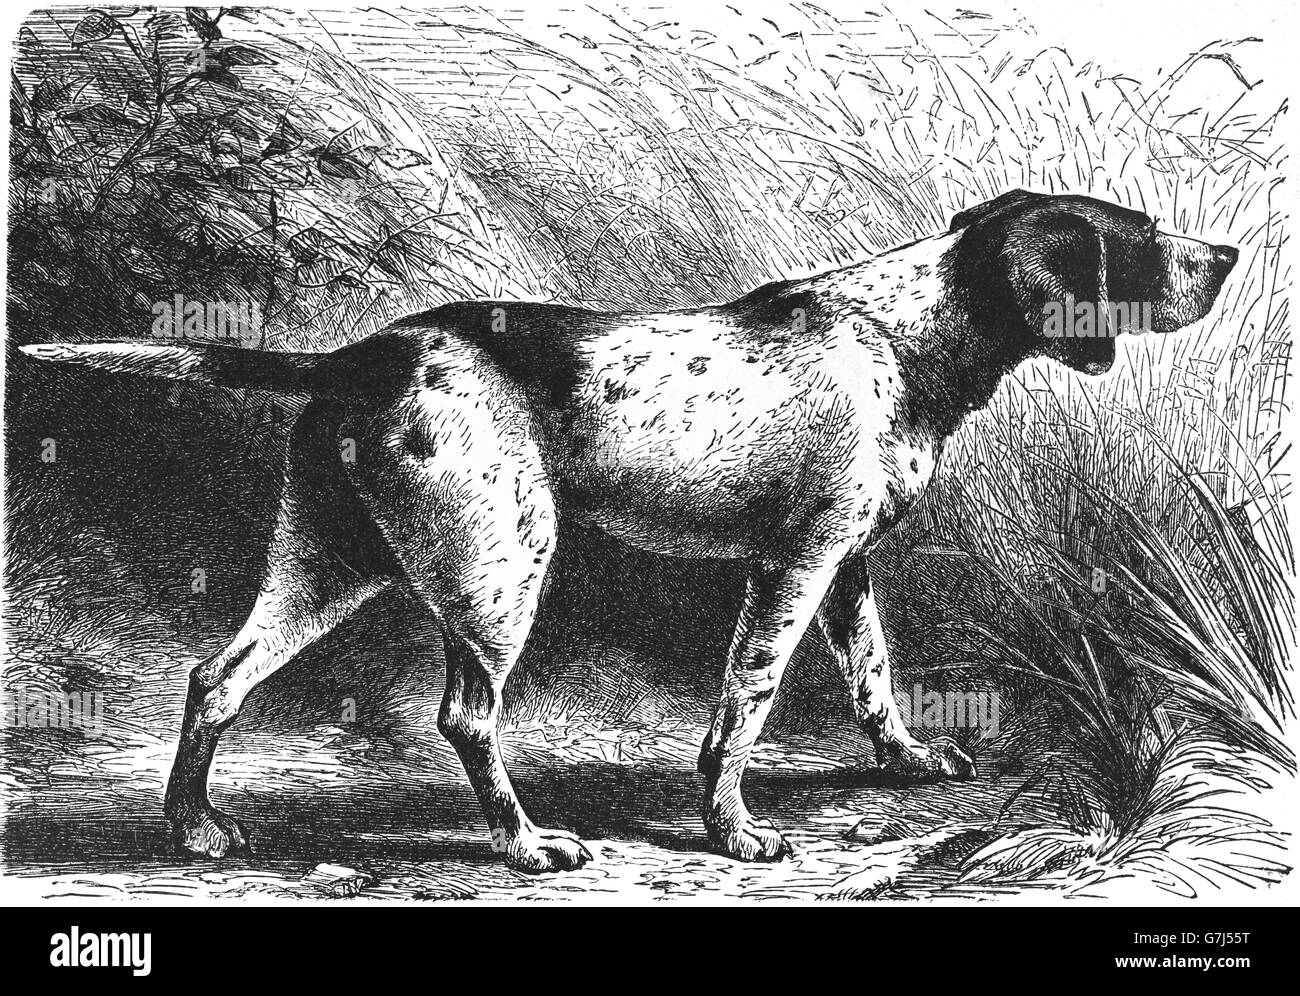 German Shorthaired Pointer, Kurzhaar dog breed, illustration from book dated 1904 - Stock Image